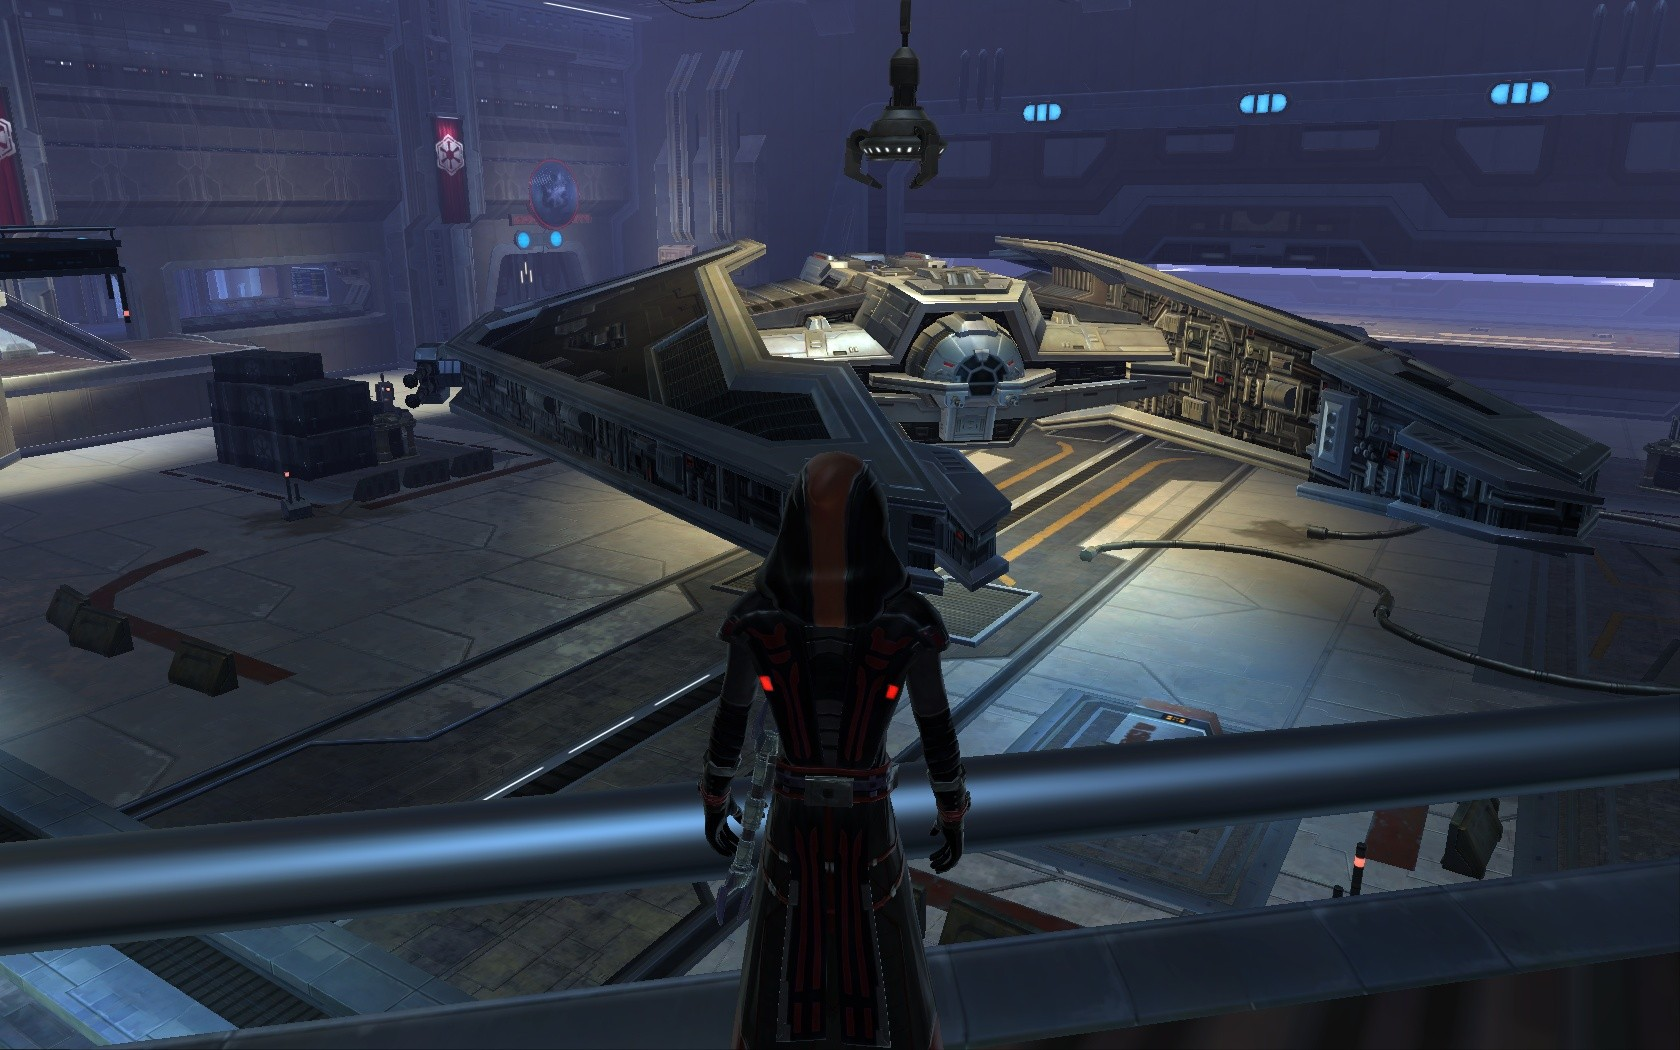 Star Wars: The Old Republic - Behold! The beauty! My ship!